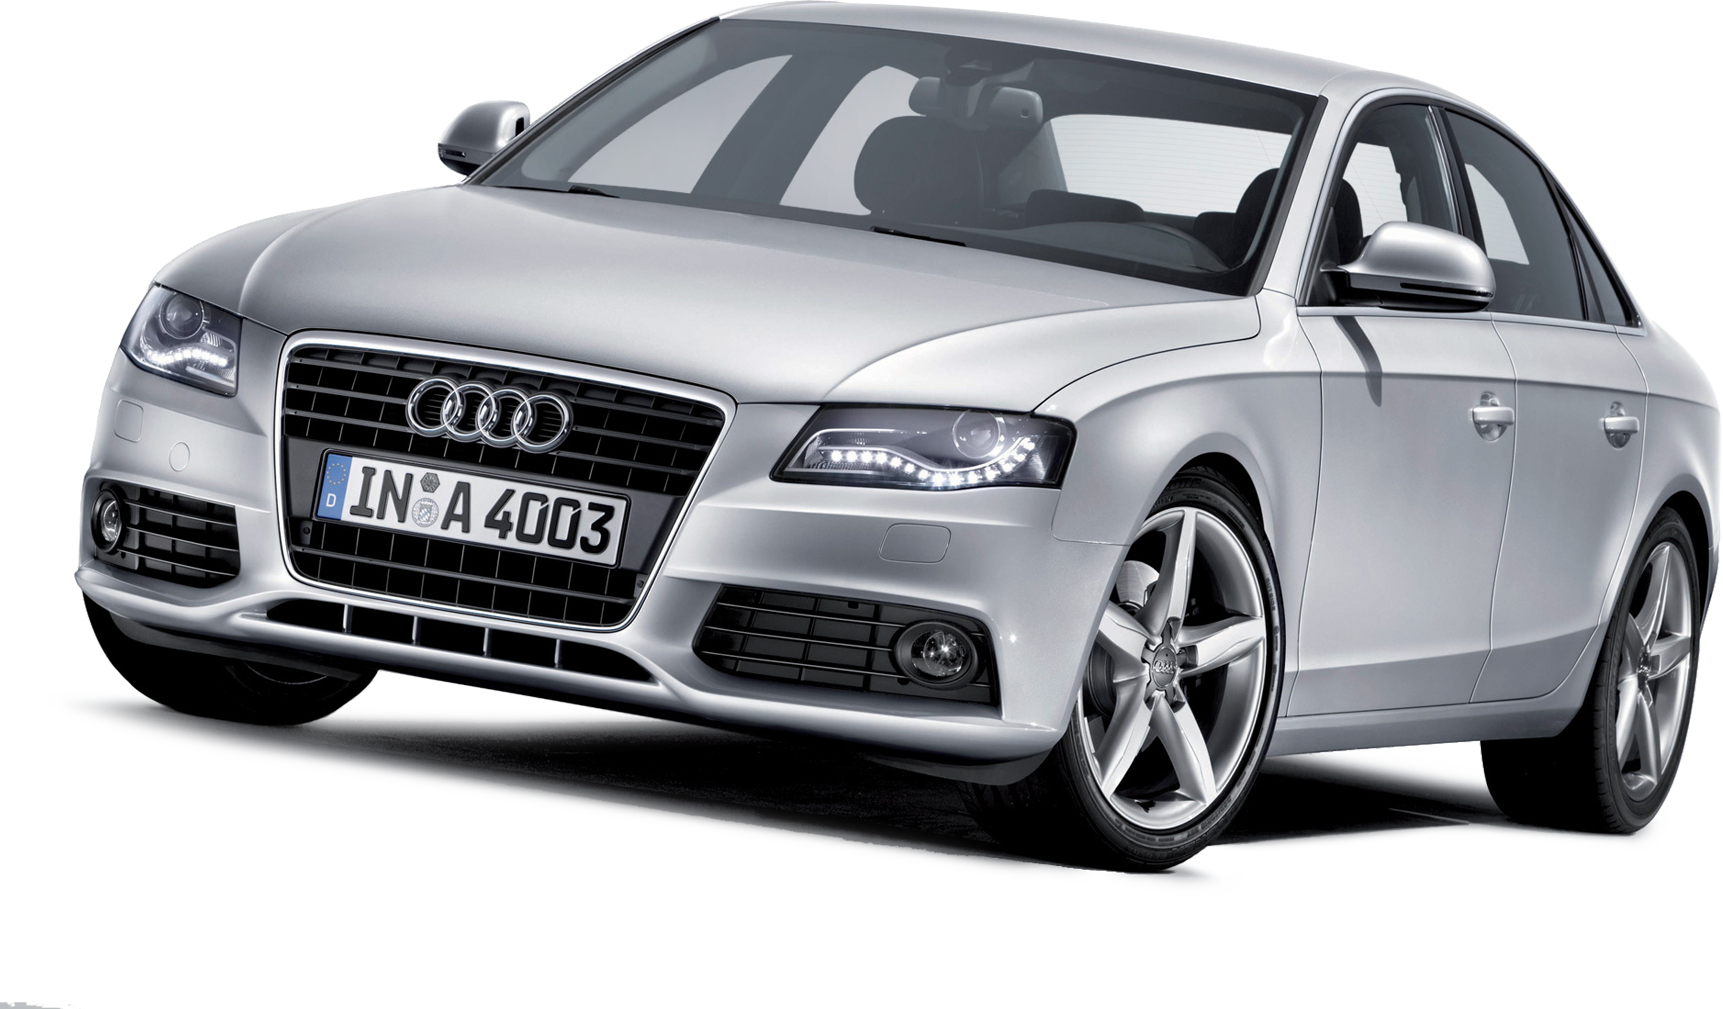 Grey Audi Png Auto Car 45312 Free Icons And Png Backgrounds